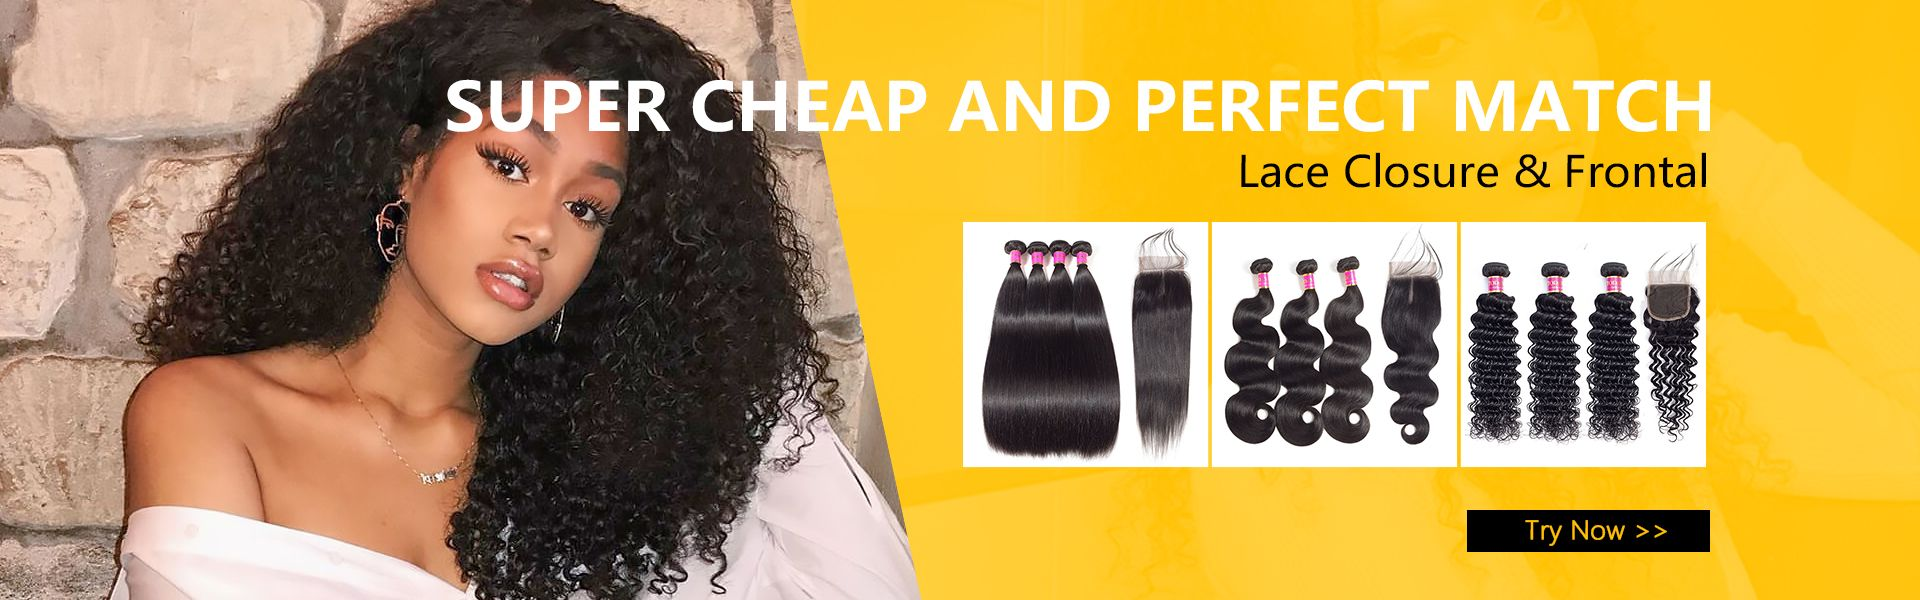 https://www.todayonlyhair.com/hair-bundles-with-closure/bundles-with-lace-closure/4-bundles-with-lace-closure.html